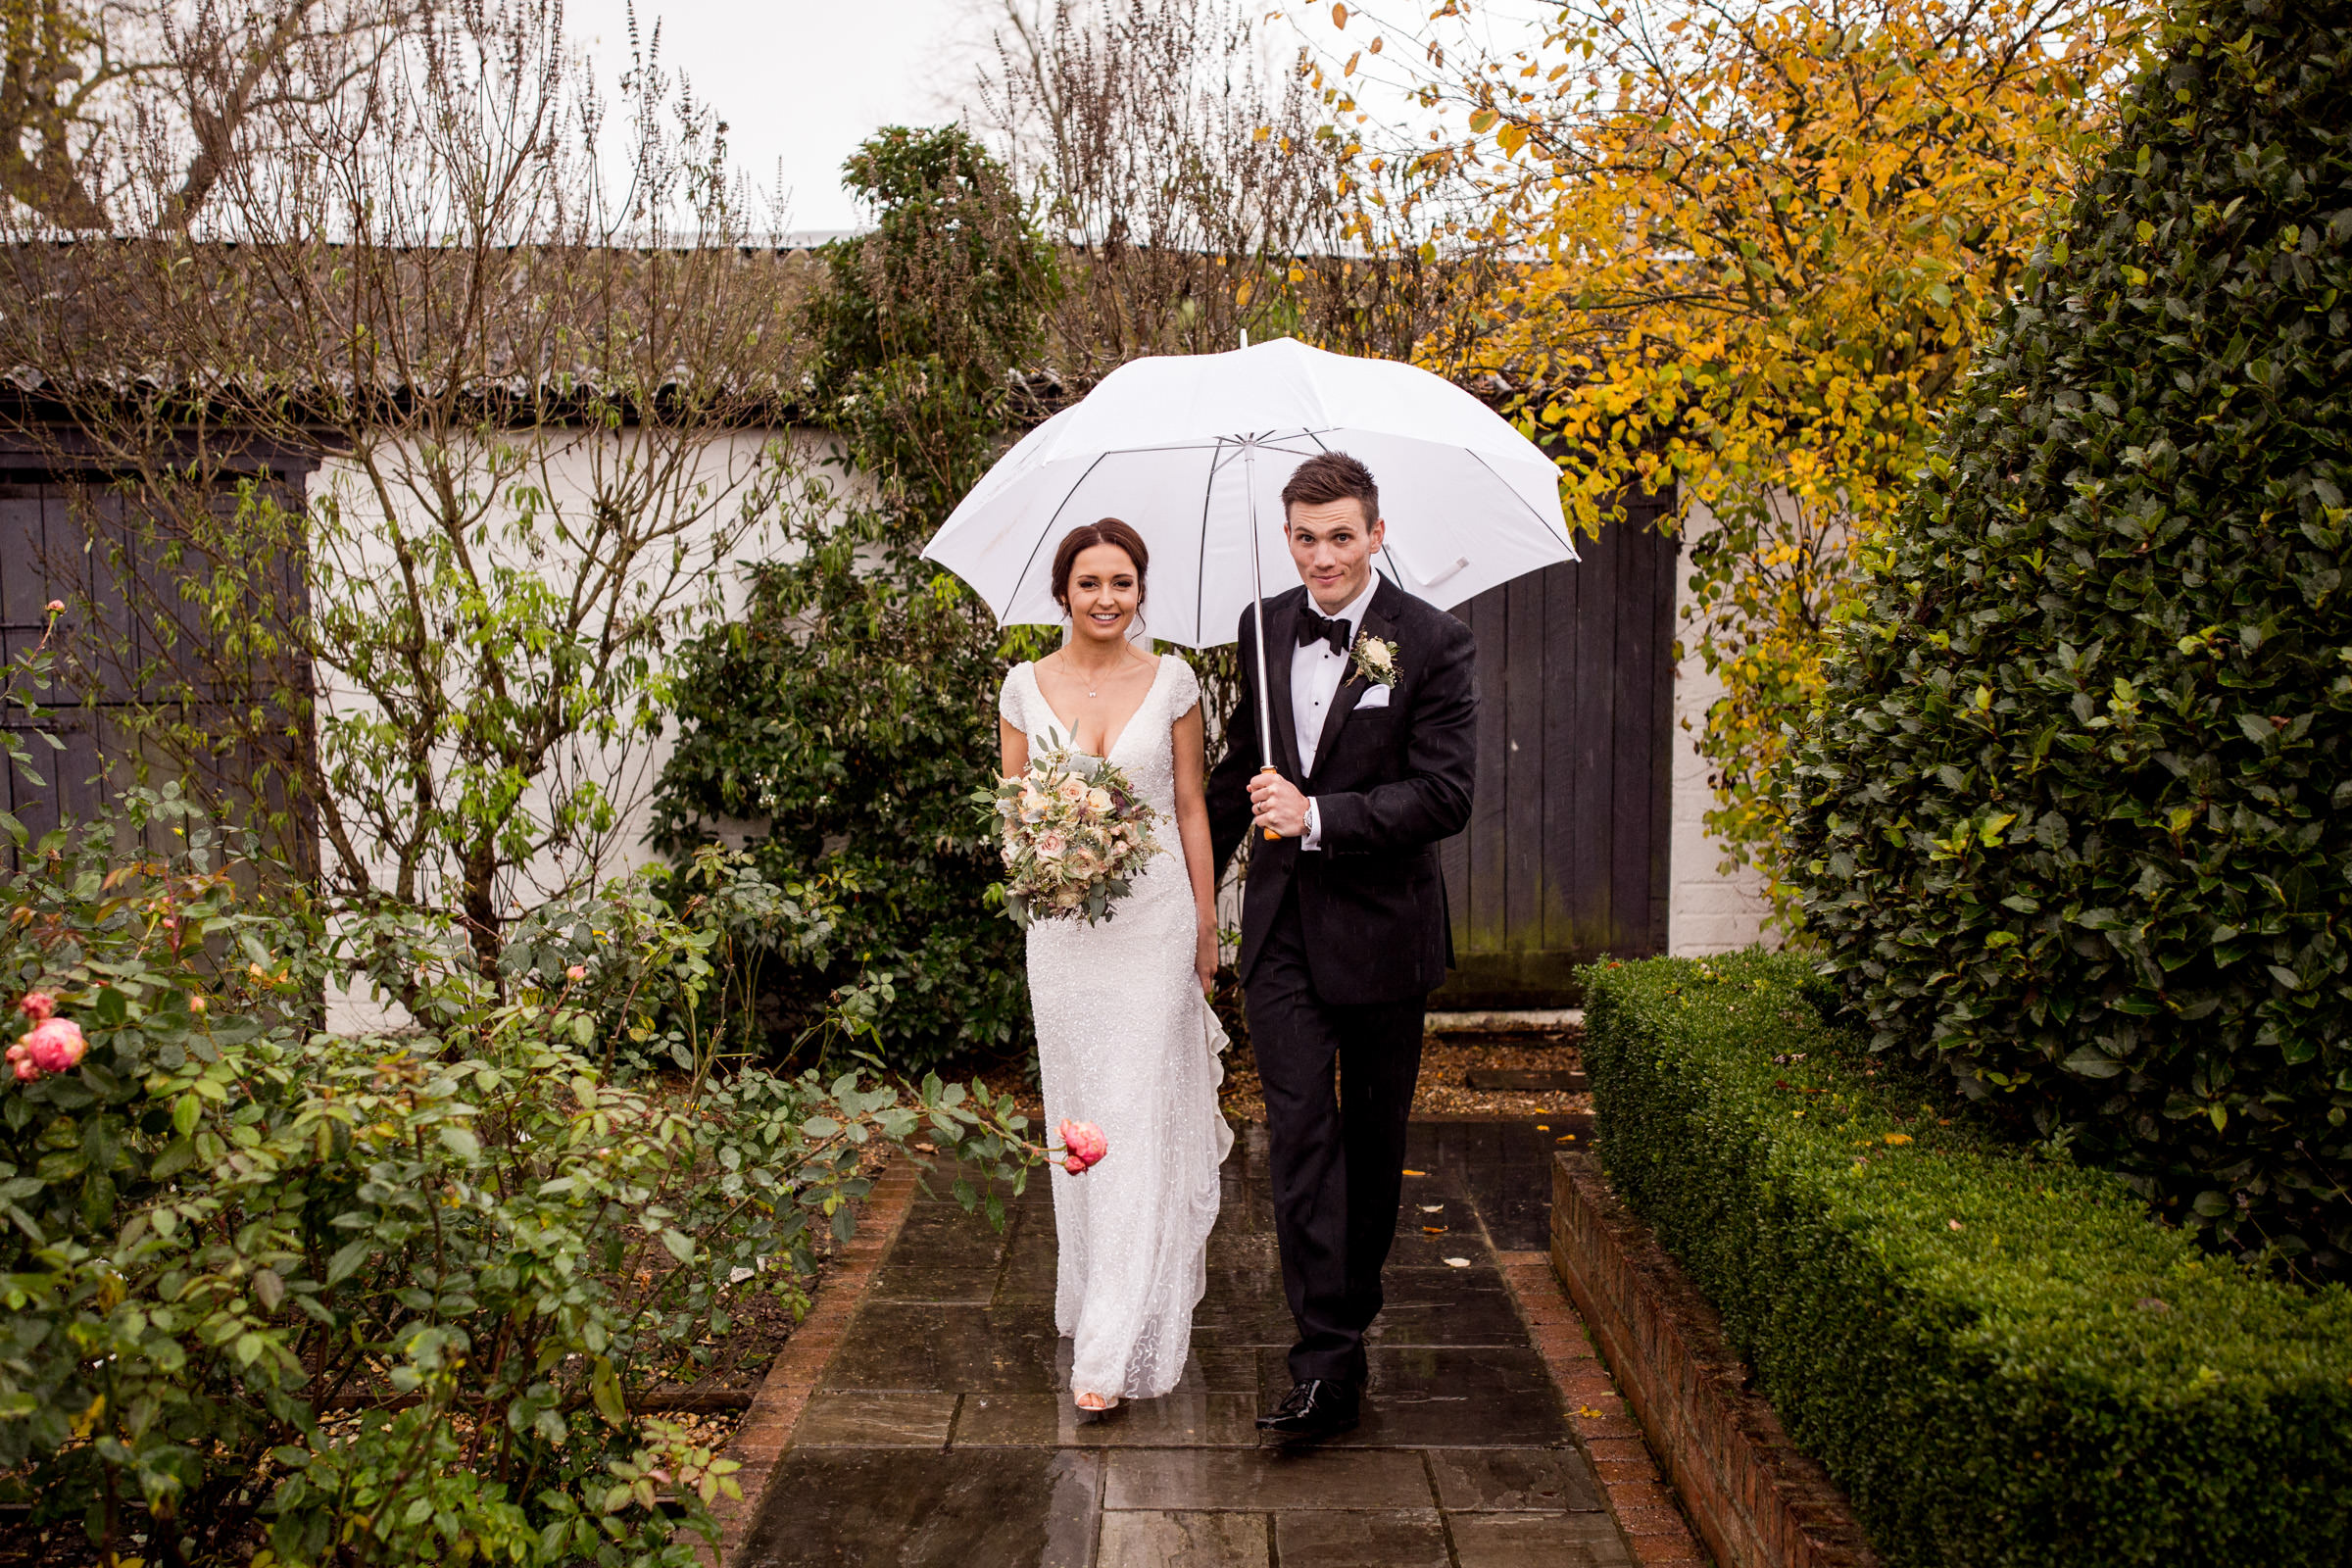 Wedding Photography at Southend Barns 018.jpg